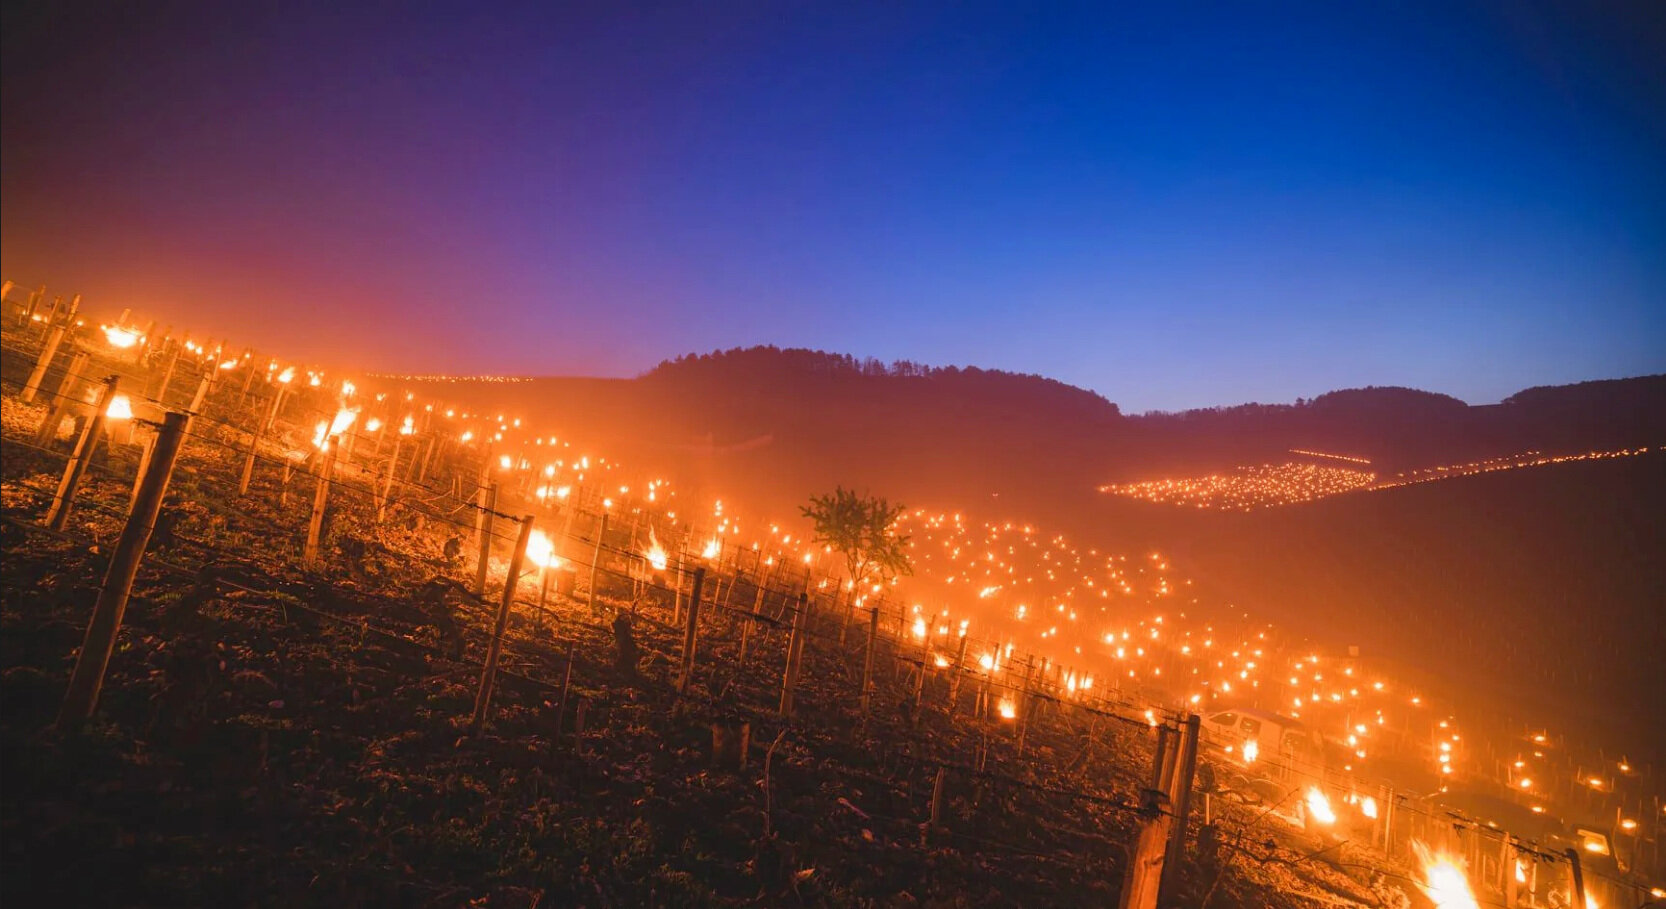 What's ahead for French wine 2021 vintages after the frosts?